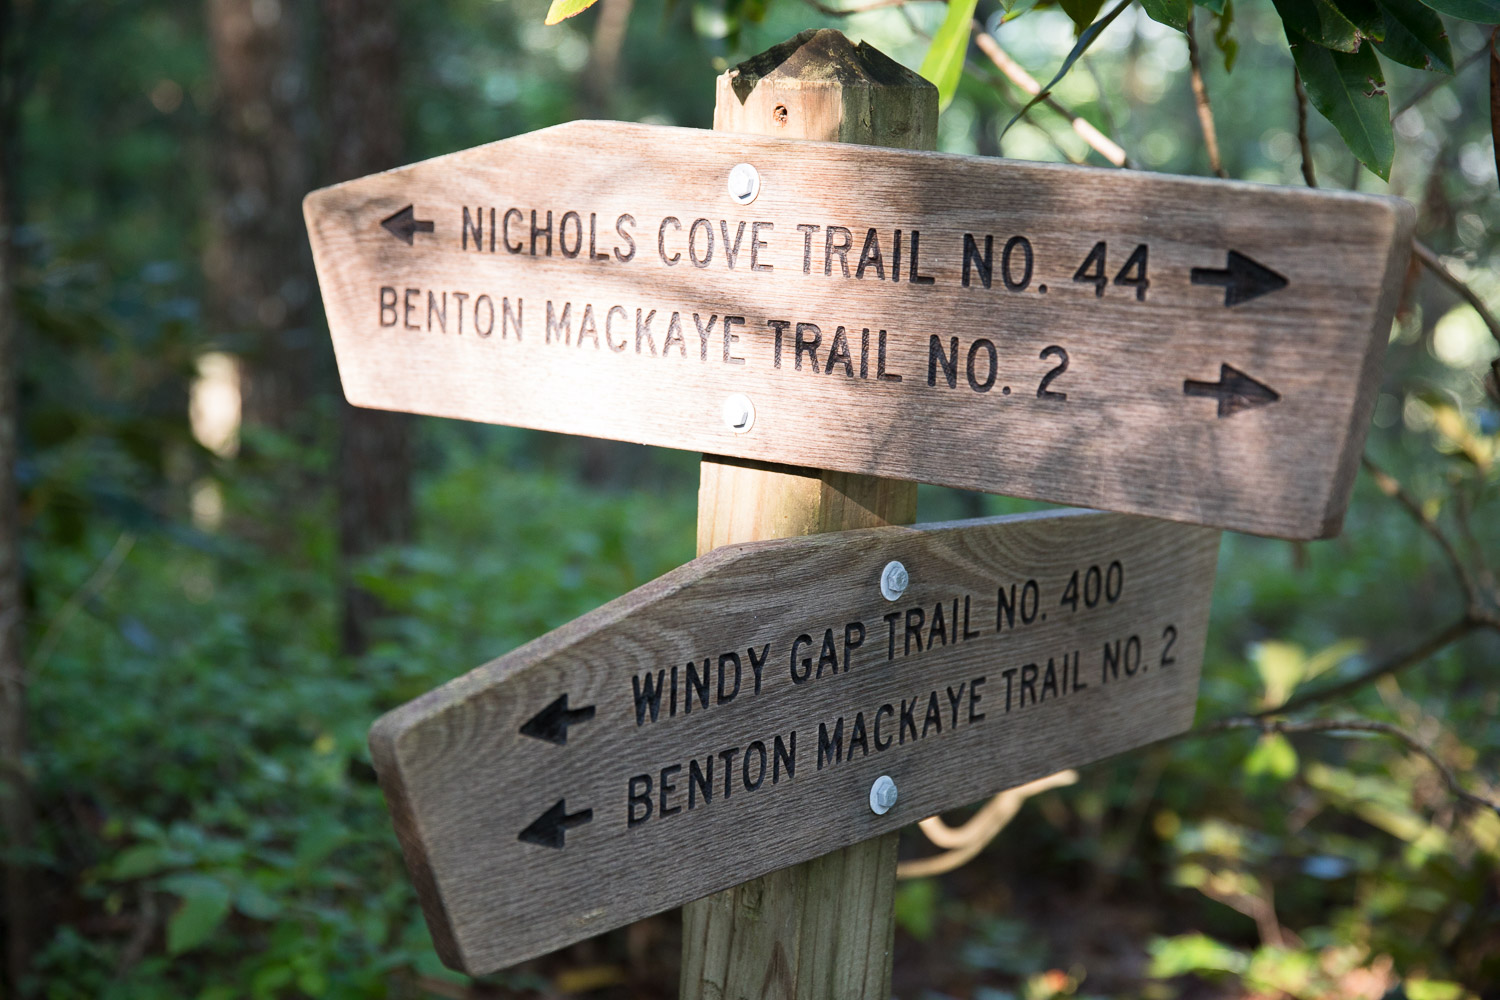 """In a wilderness area all you get are signs at trail intersections. No trail blazes. No signs along the way. No """"X Miles to Sight A"""" markers. Nothing. Just intersections like this."""